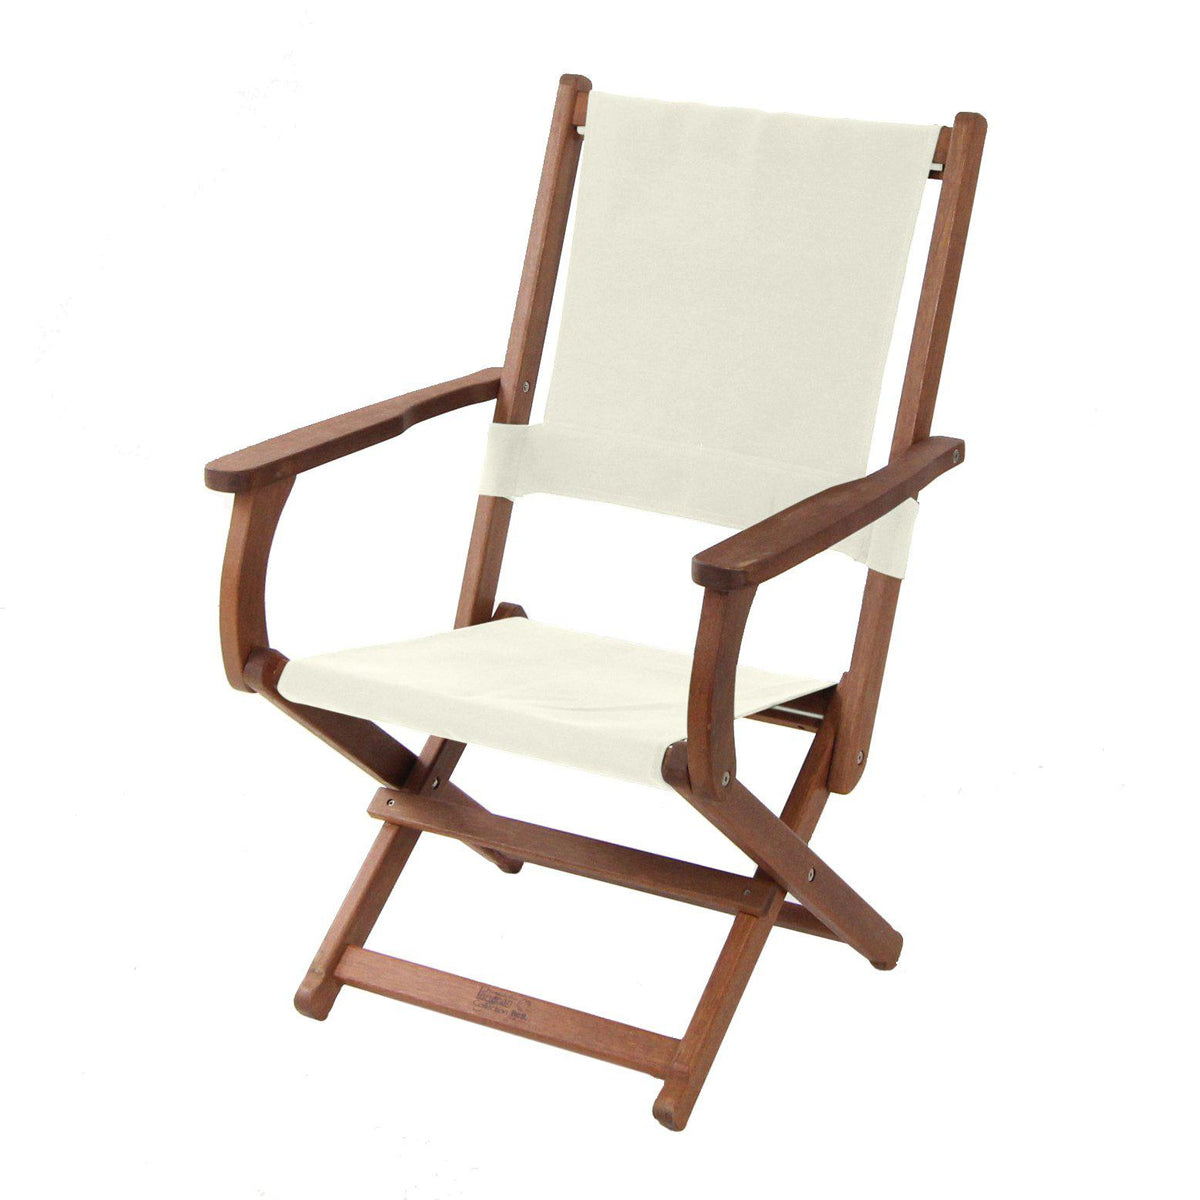 Joseph Byer Chair, Natural, from Byer of Maine